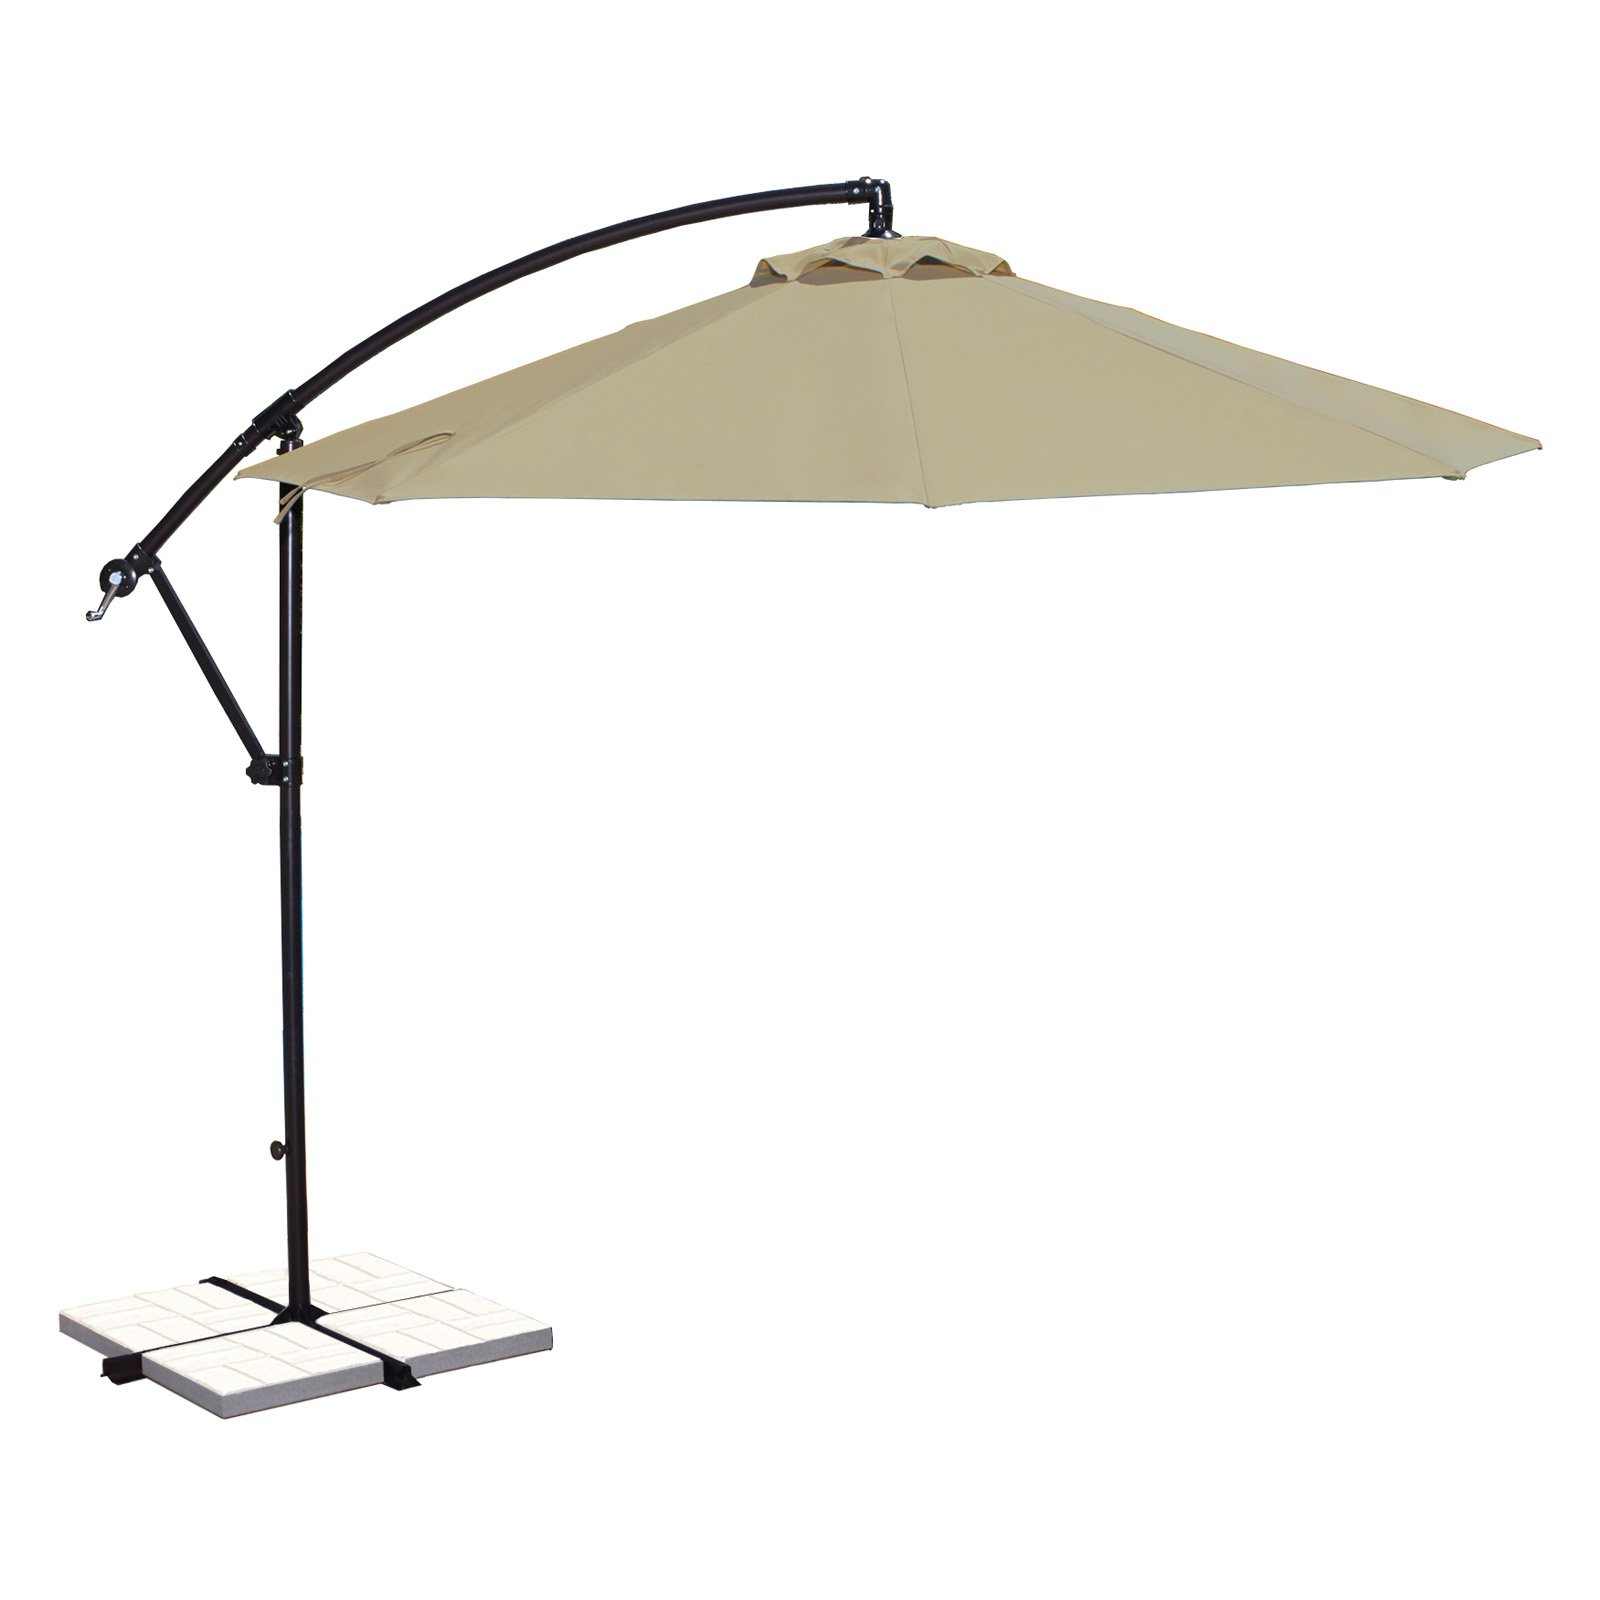 Island Umbrella Santiago 10-ft Octagonal Cantilever Umbrella in Beige Sunbrella Acrylic by Blue Wave Products